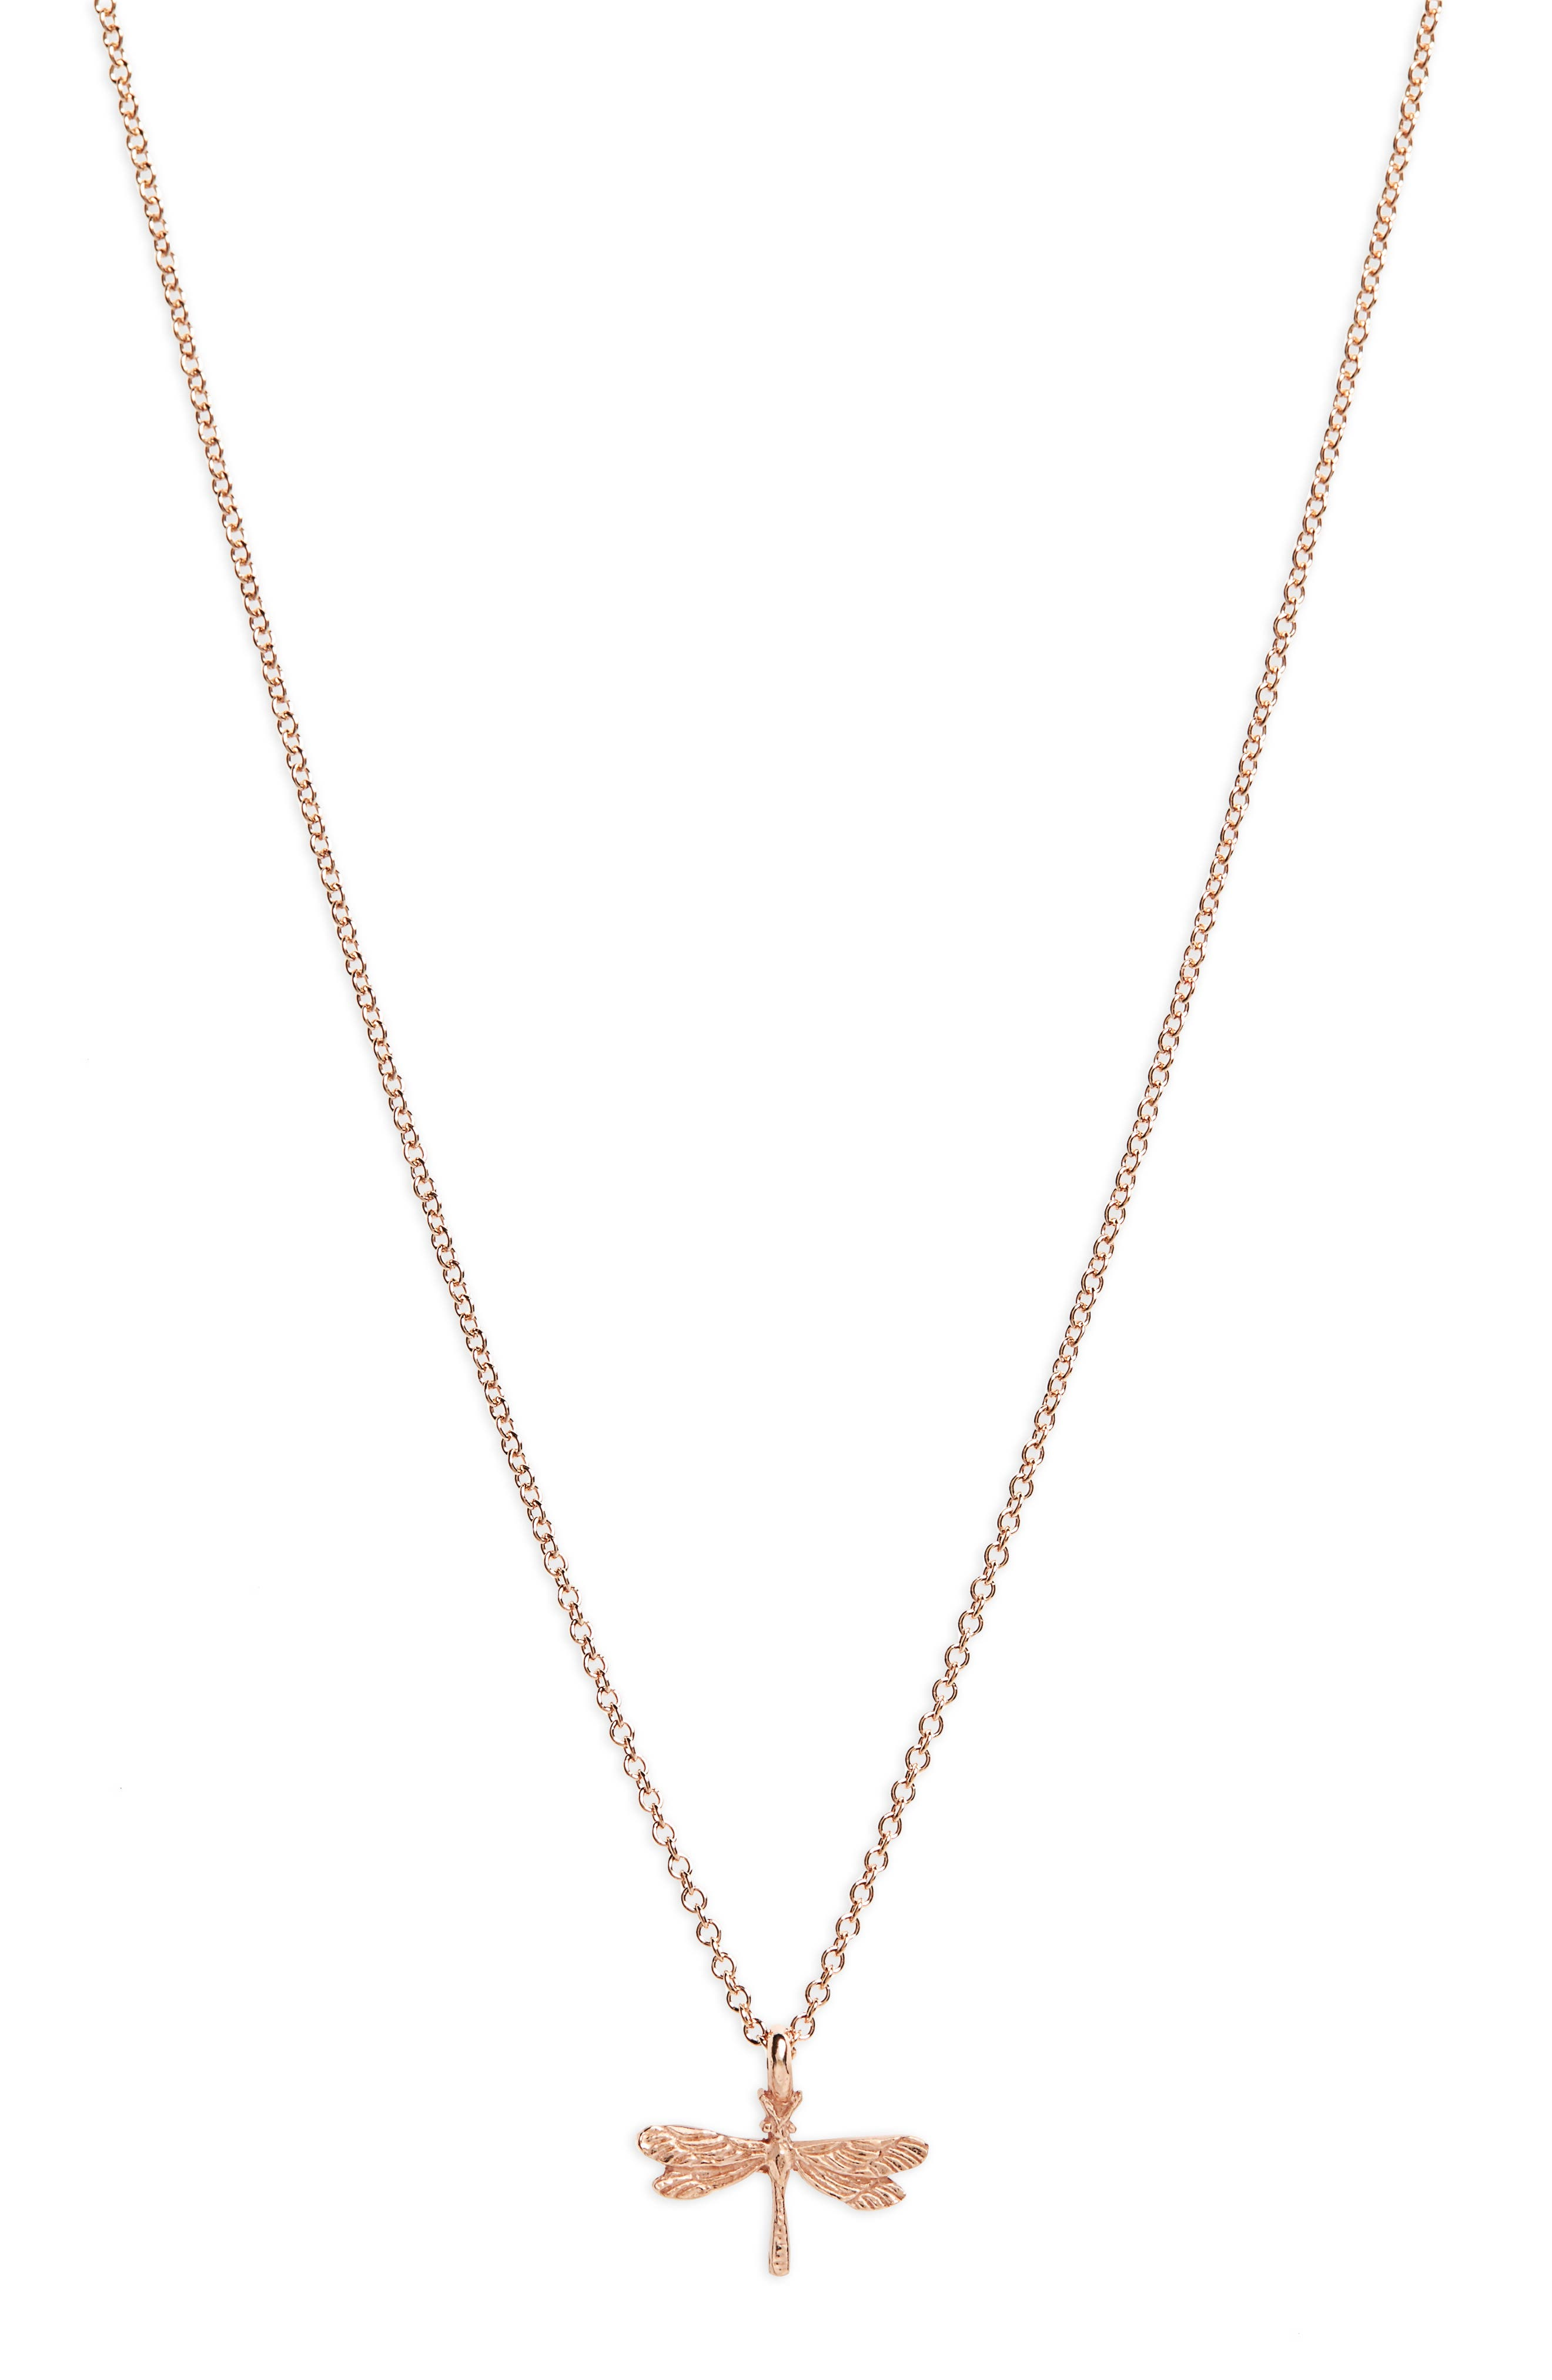 Friends Forever Dragonfly Pendant Necklace,                         Main,                         color, 650